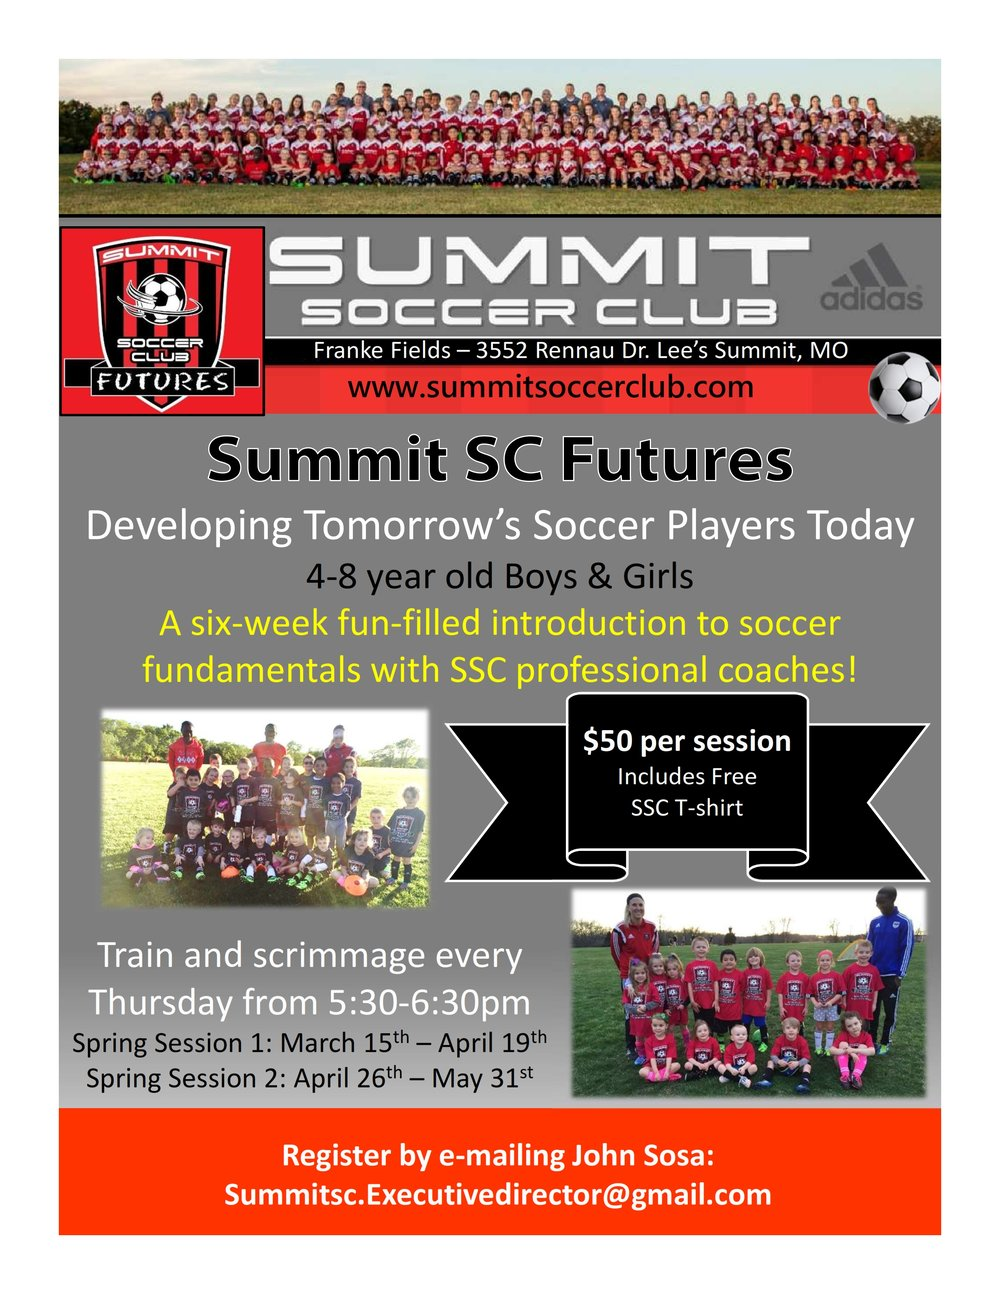 2018 Spring Futures Flier - Summit SC_001.jpg